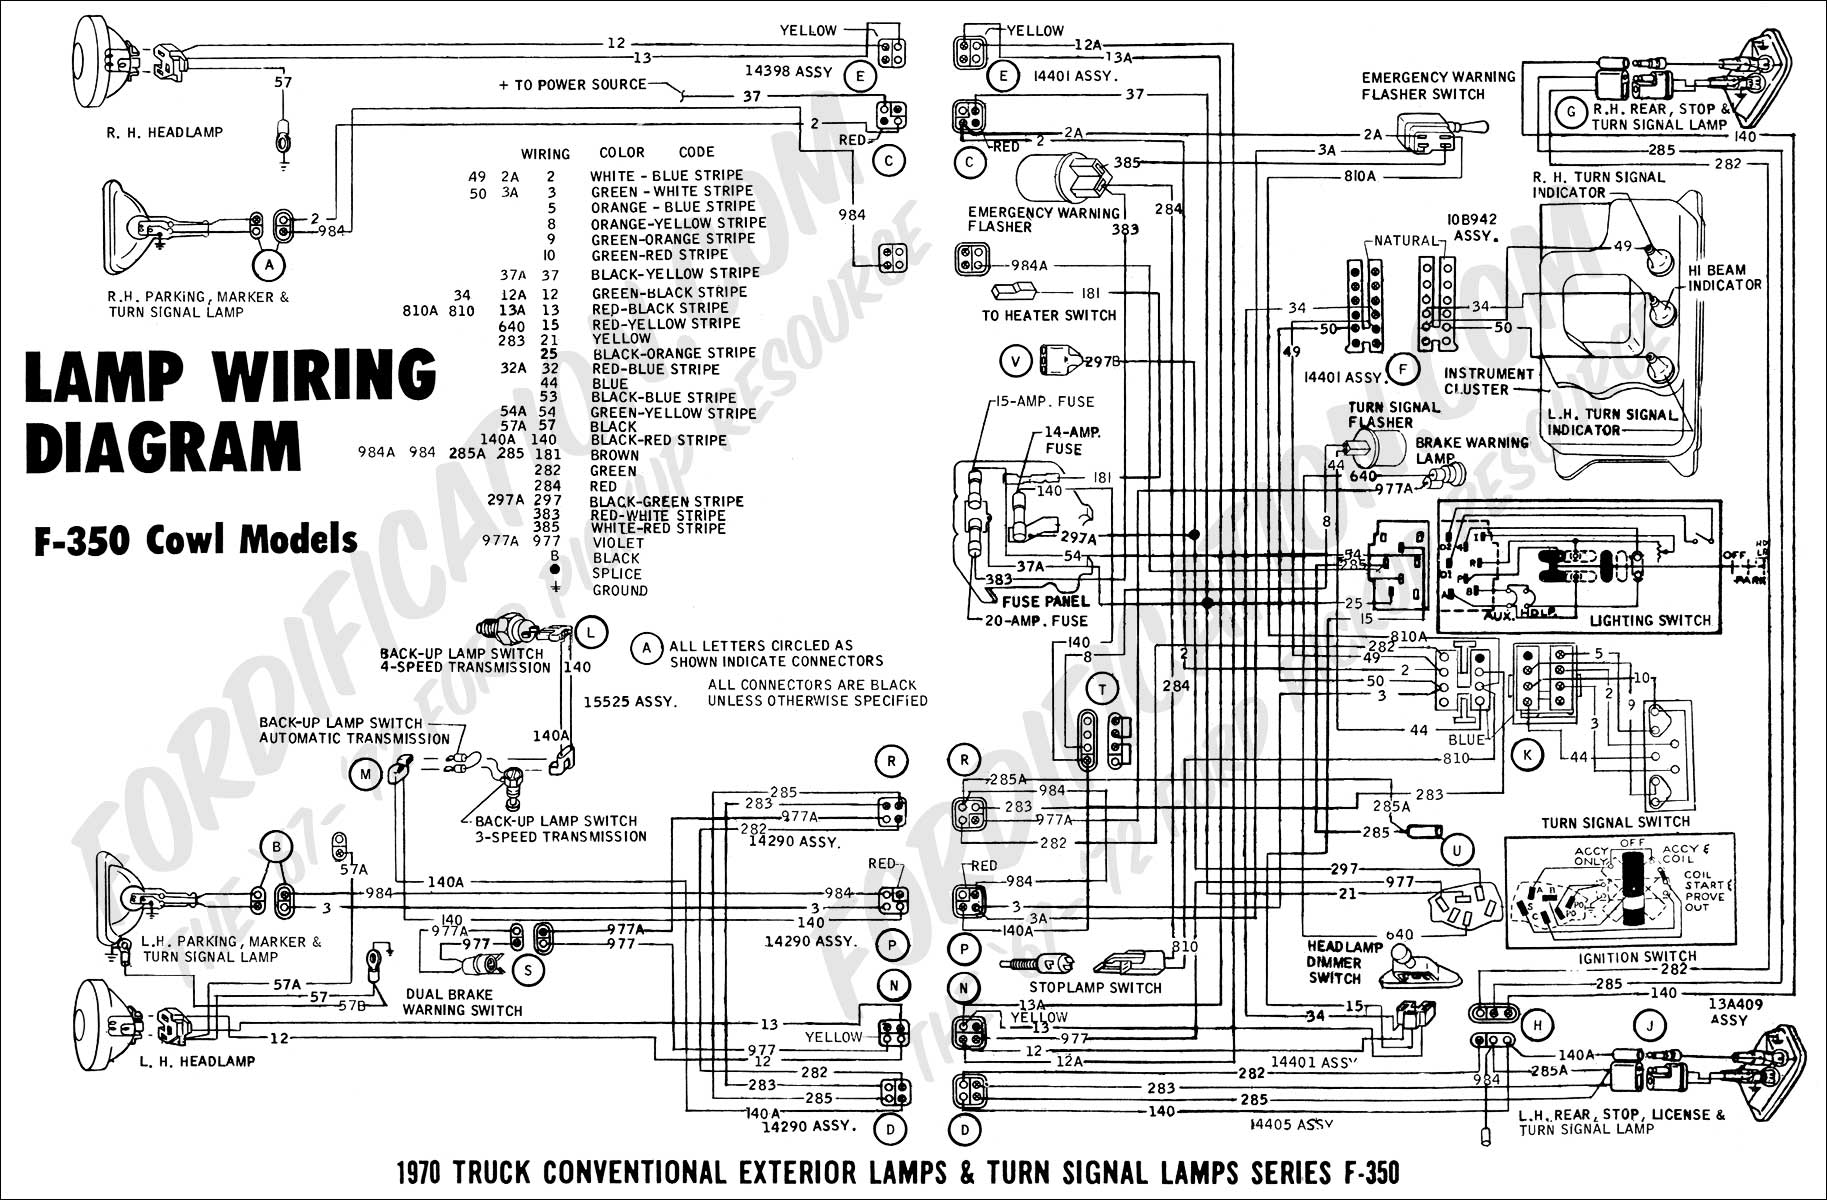 ford truck technical drawings and schematics - section h - wiring diagrams  fordification.com